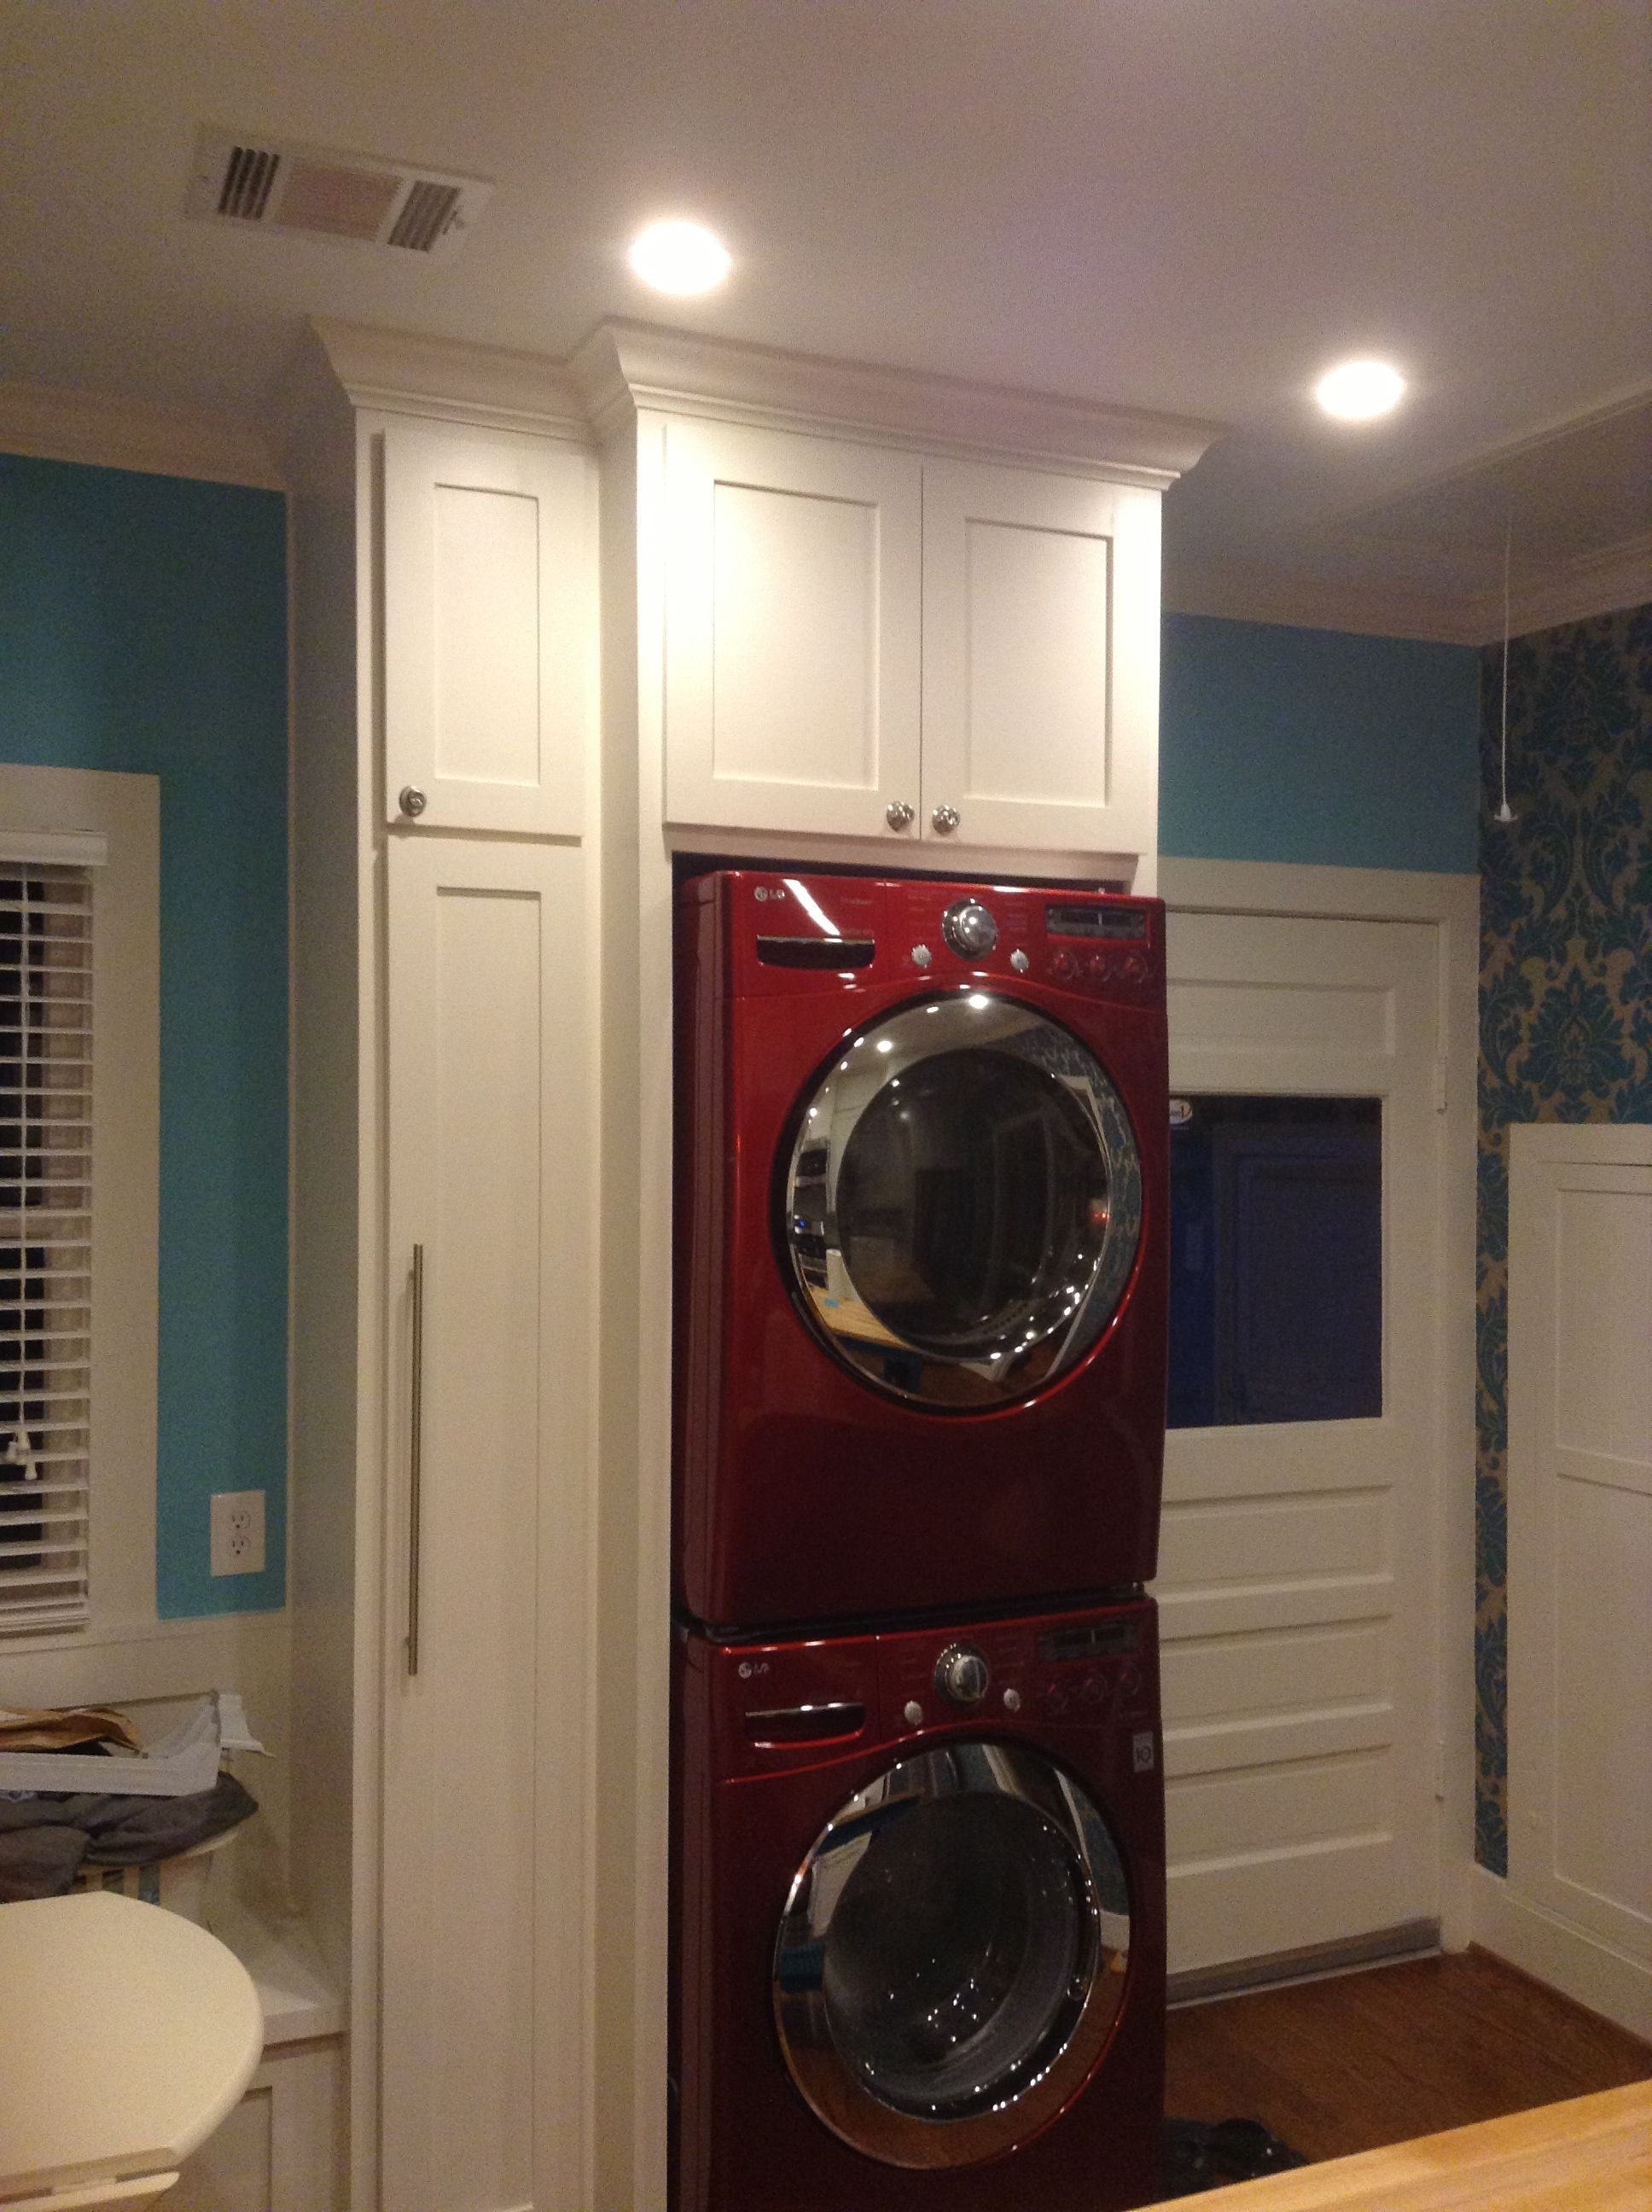 Red Lg Stacked Washer Dryer Laundry Area In Kitchen Crown Molding